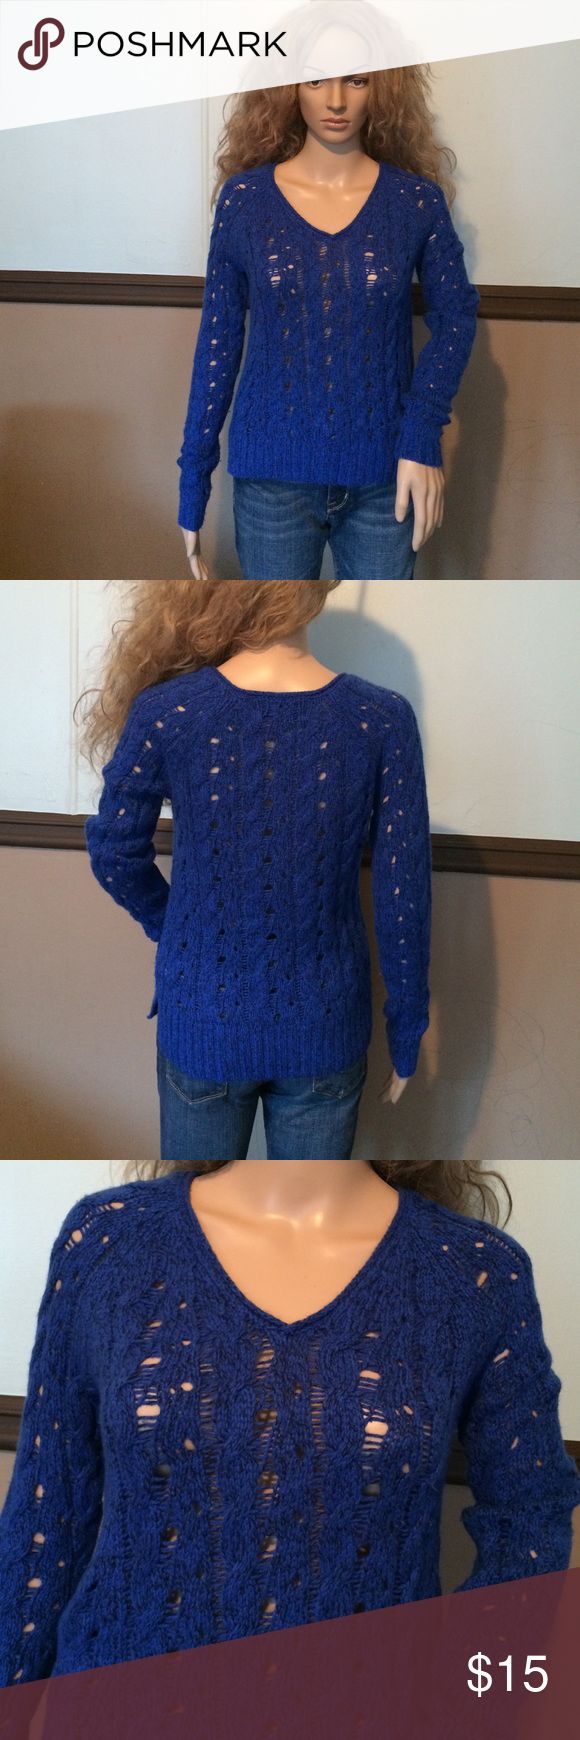 Abercrombie Fitch sweater Perfect condition Abercrombie & Fitch Sweaters